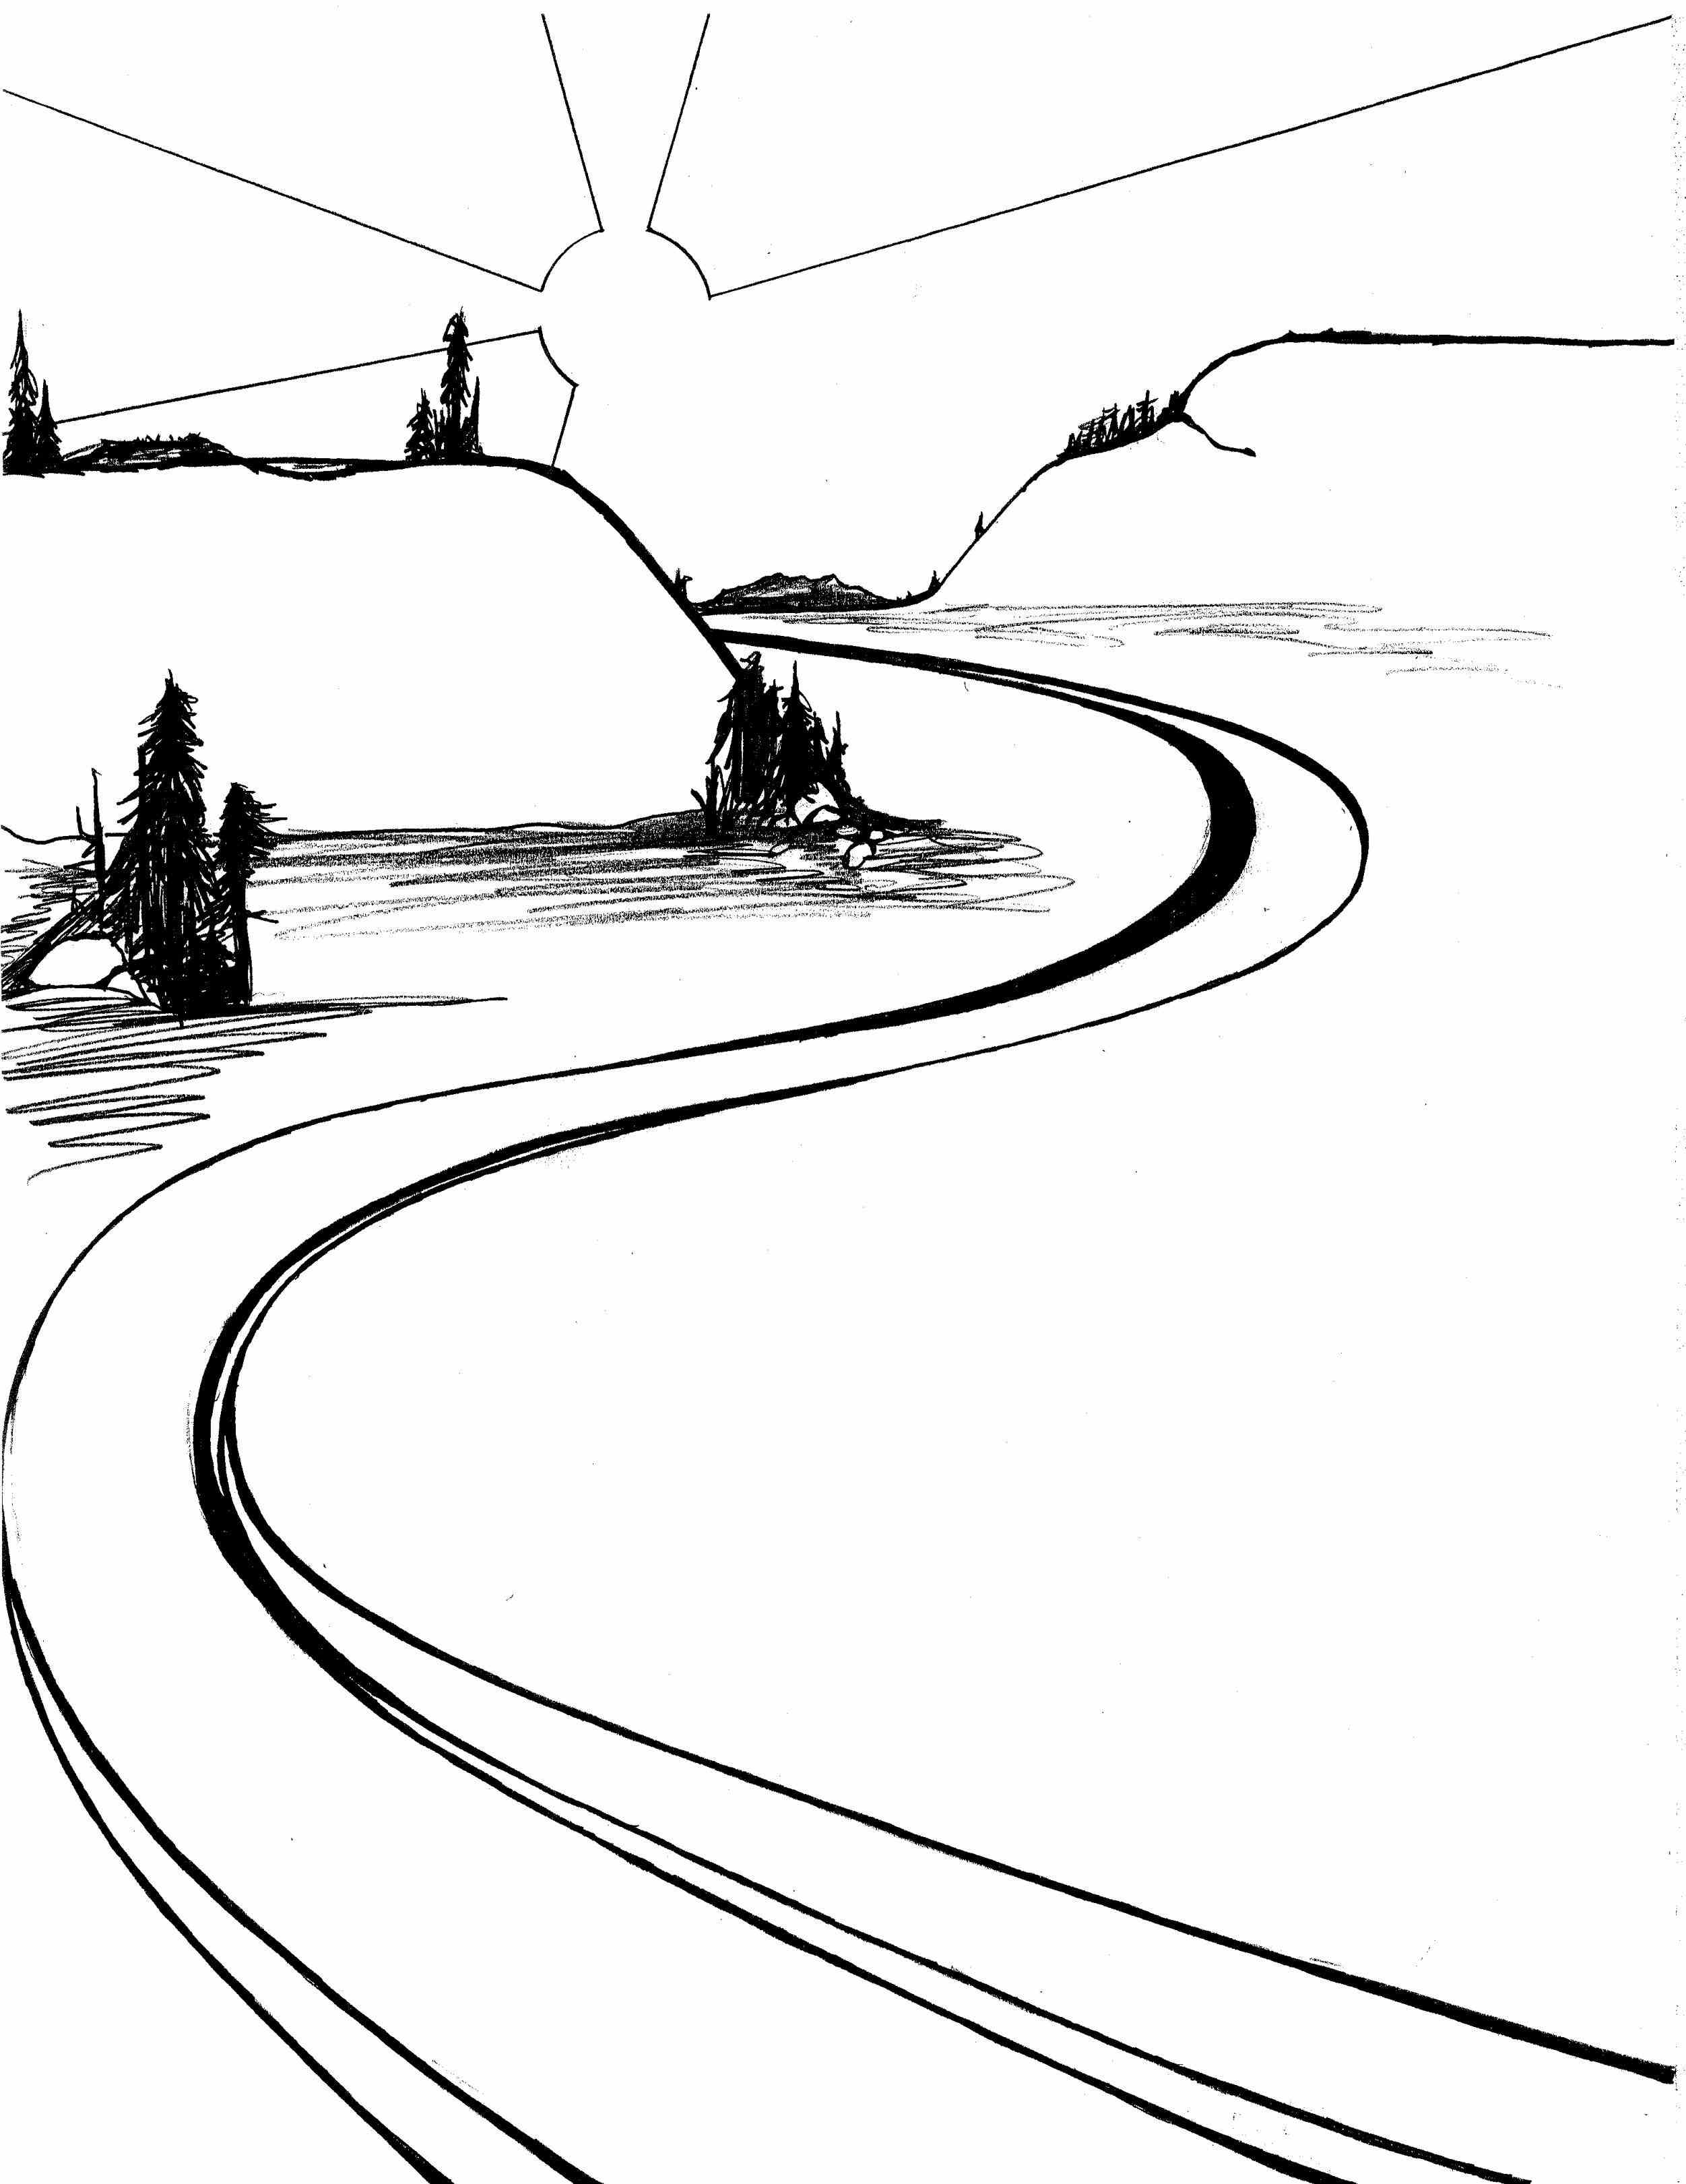 Path clipart black and white - 125 transparent clip arts, images and ... clipart free